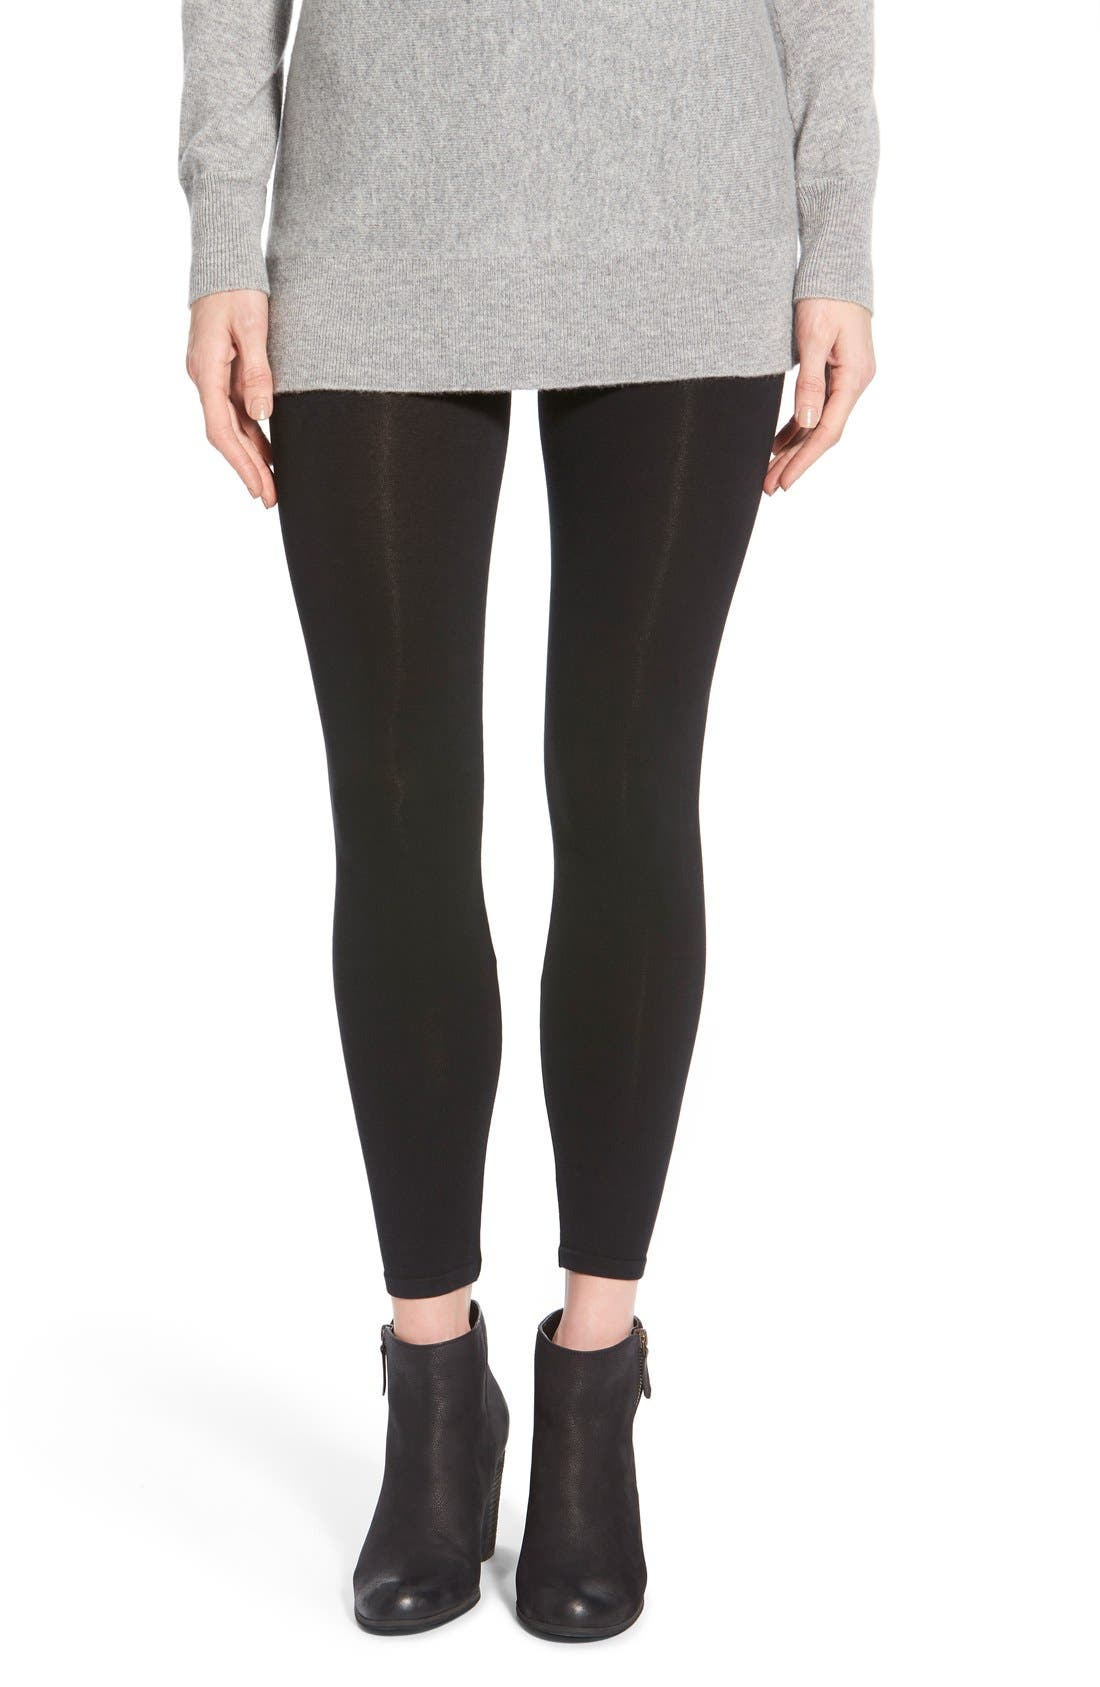 Main Image - SPANX® 'Look-at-Me' Shaping Leggings